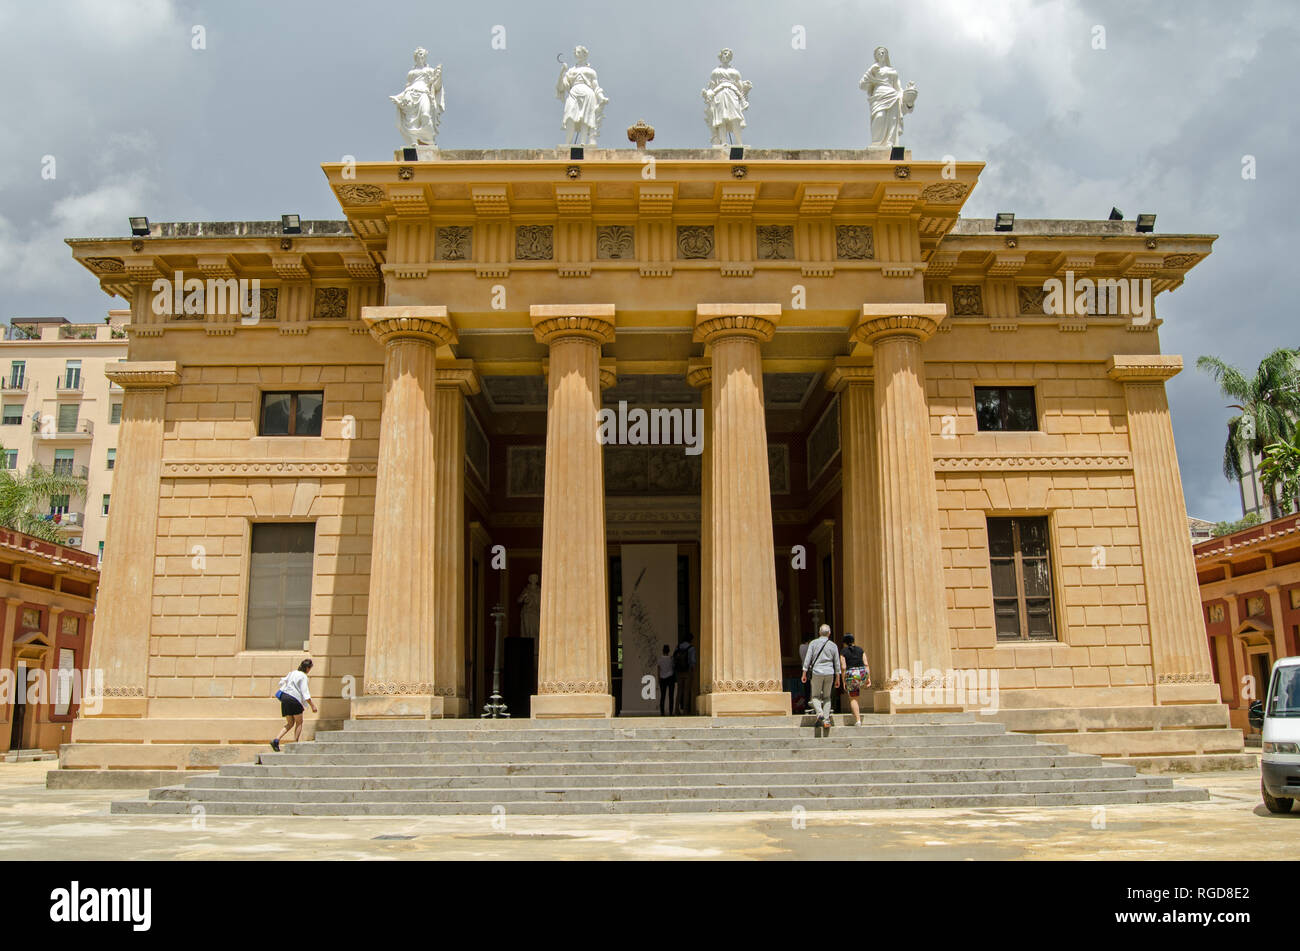 PALERMO, ITALY - JUNE 15, 2018: Visitors entering the classically inspired Gymnasium building at the Botanical Gardens in Palermo, Sicily.  Sunny summ - Stock Image